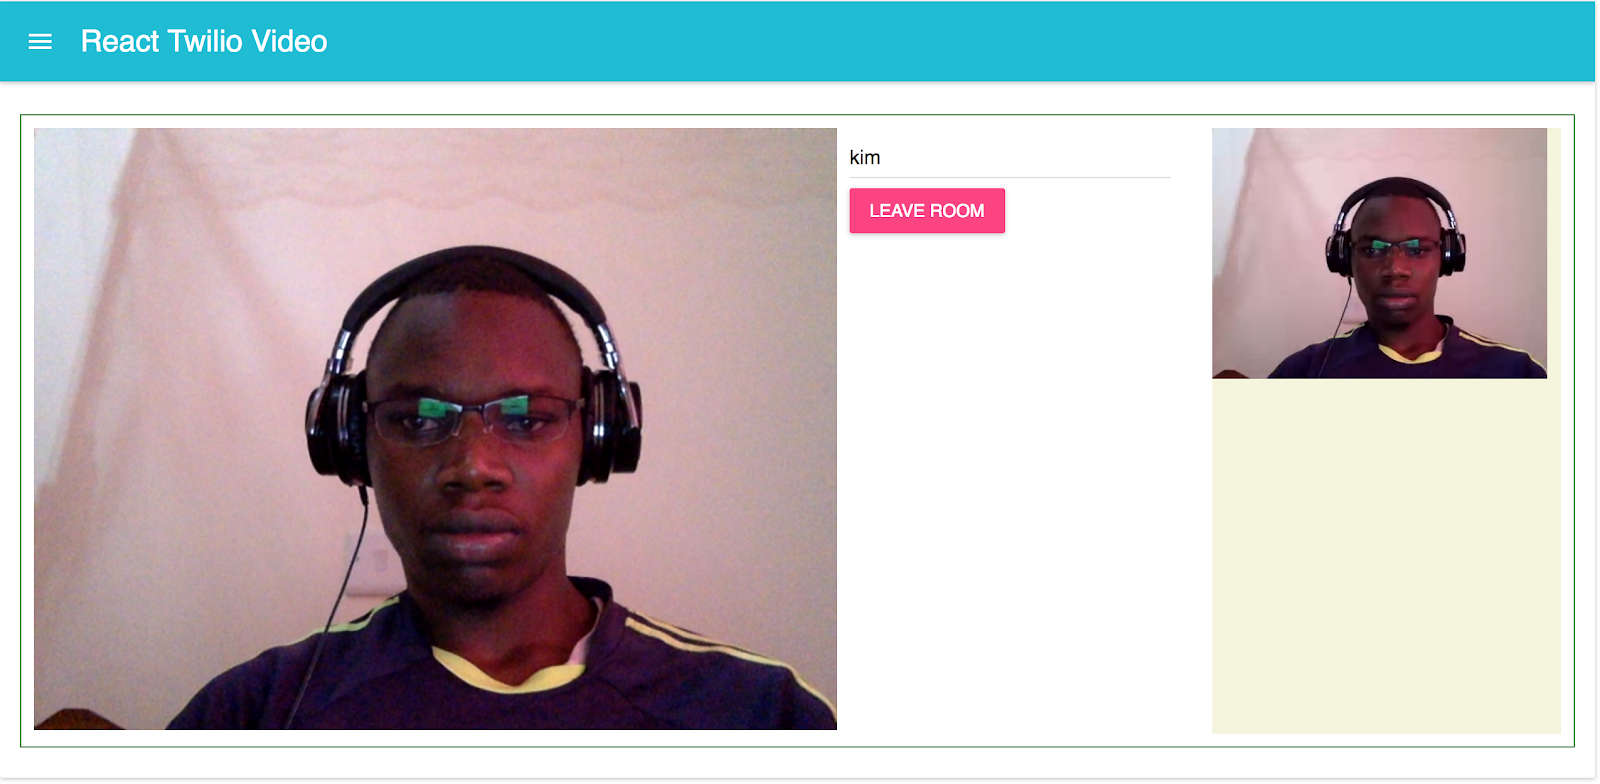 Building a Video Chat App with Twilio Programmable Video and React